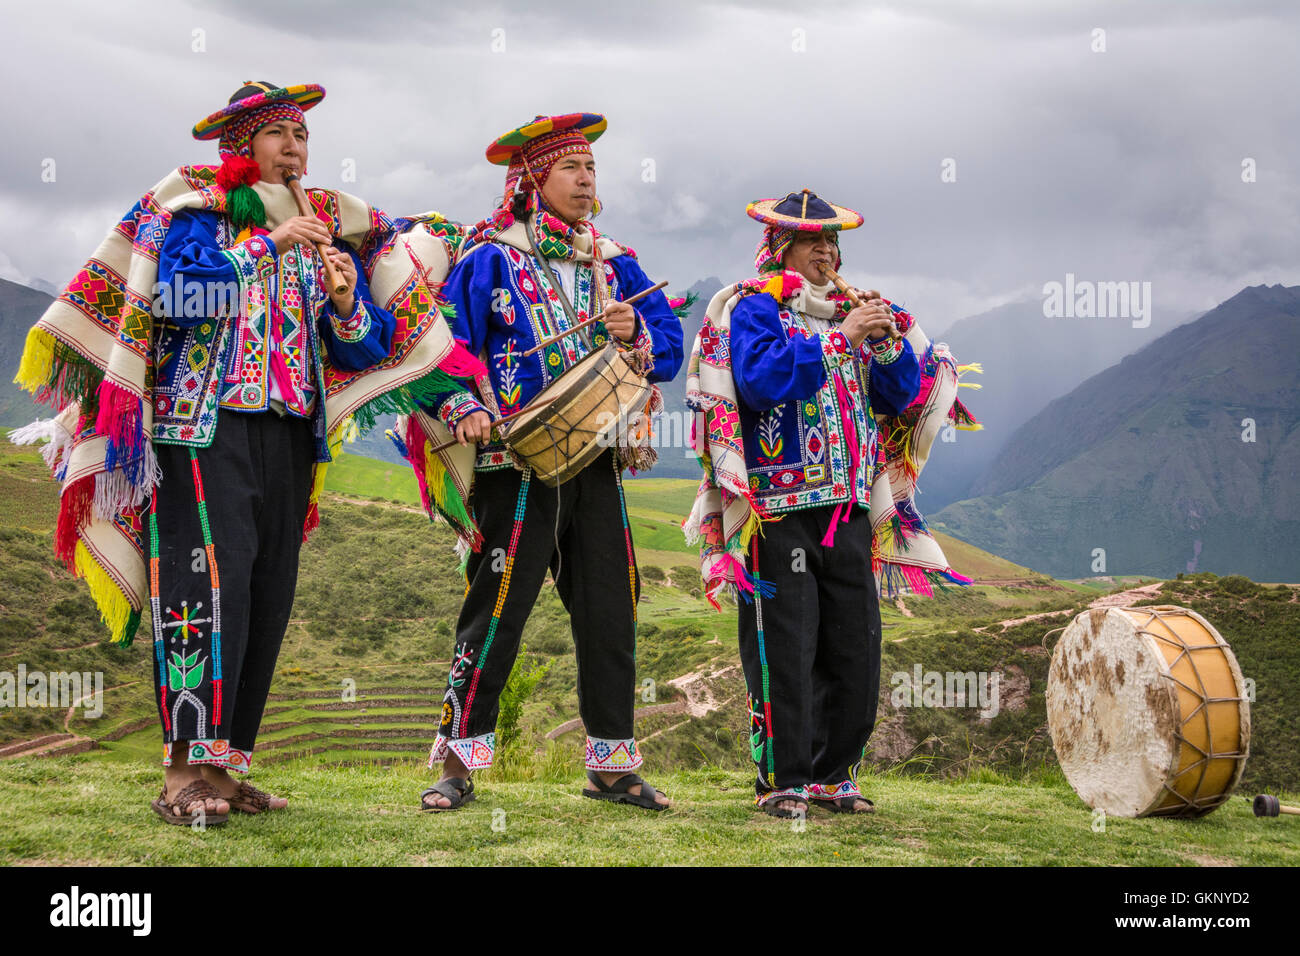 Quechua men in traditional clothing with musical instruments in performance at El Parador de Moray, Sacred Valley, - Stock Image